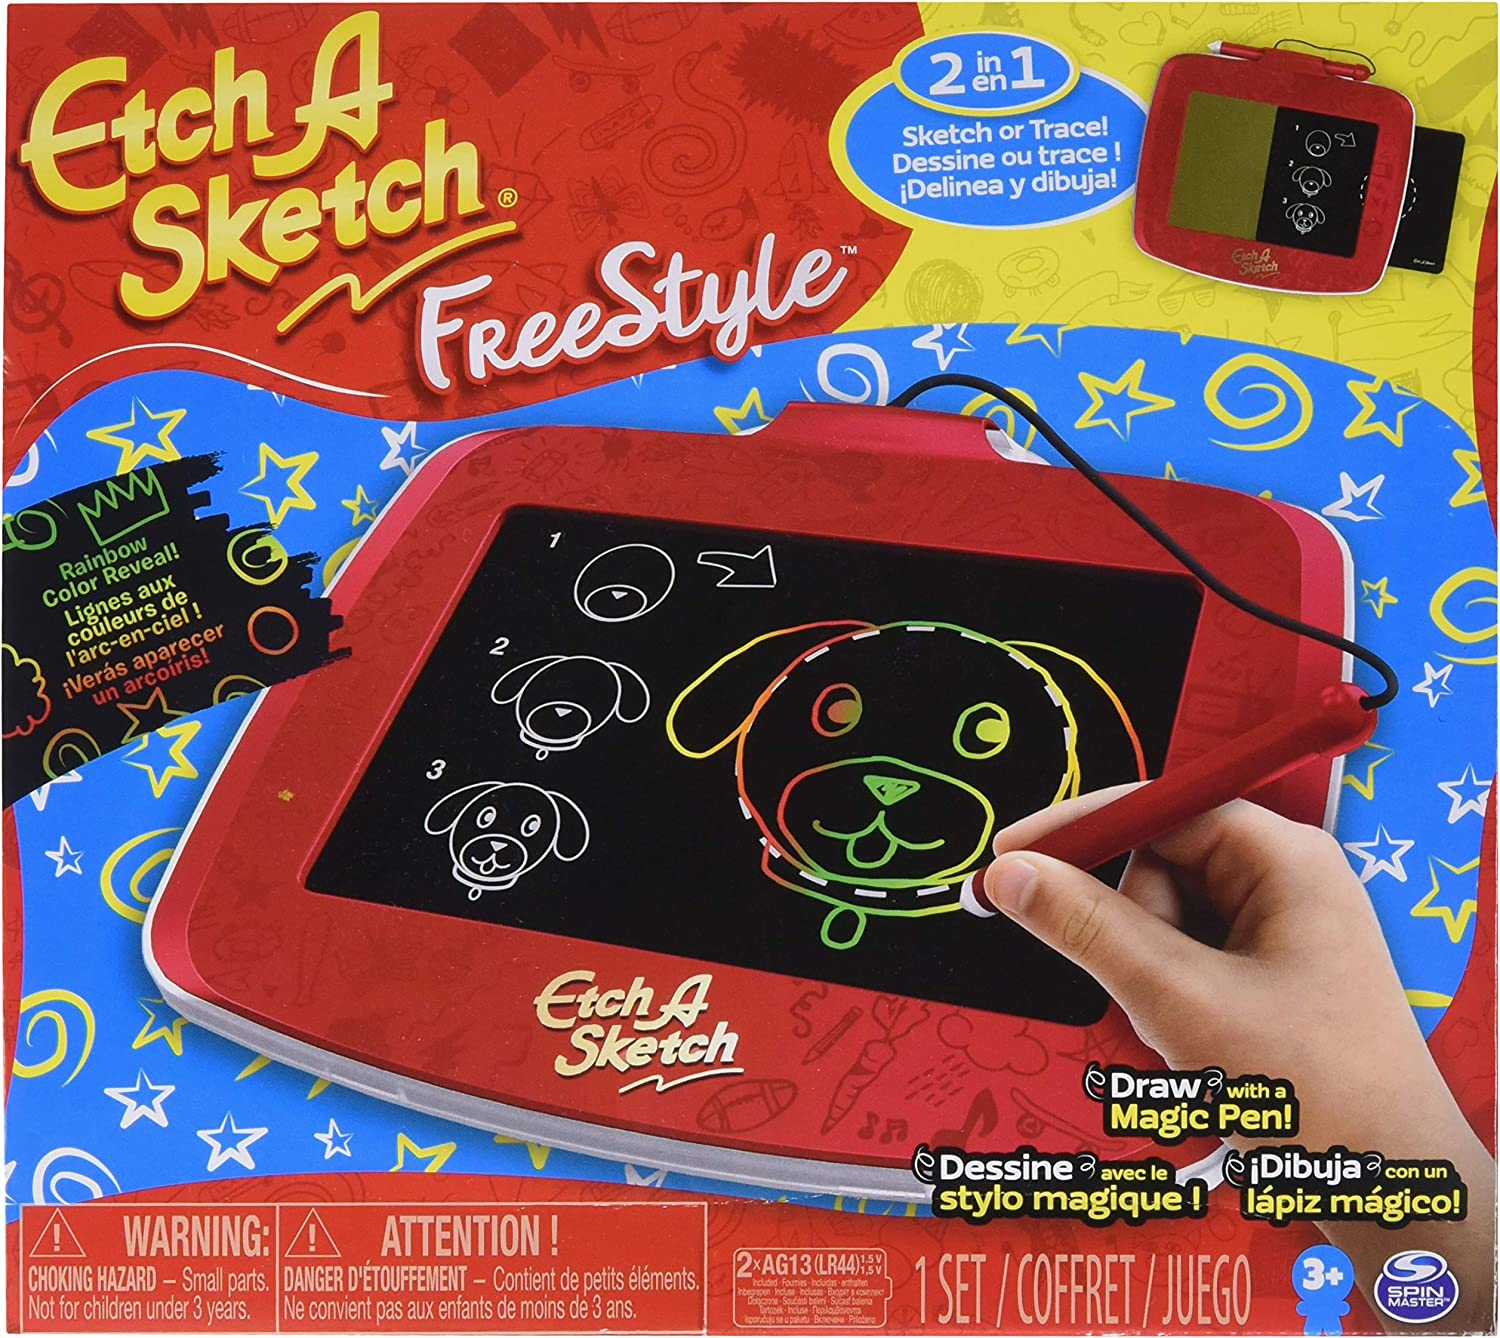 Etch A Sketch Freestyle, 2-in-1 Drawing and Tracing Pad with Magic Pen Stylus